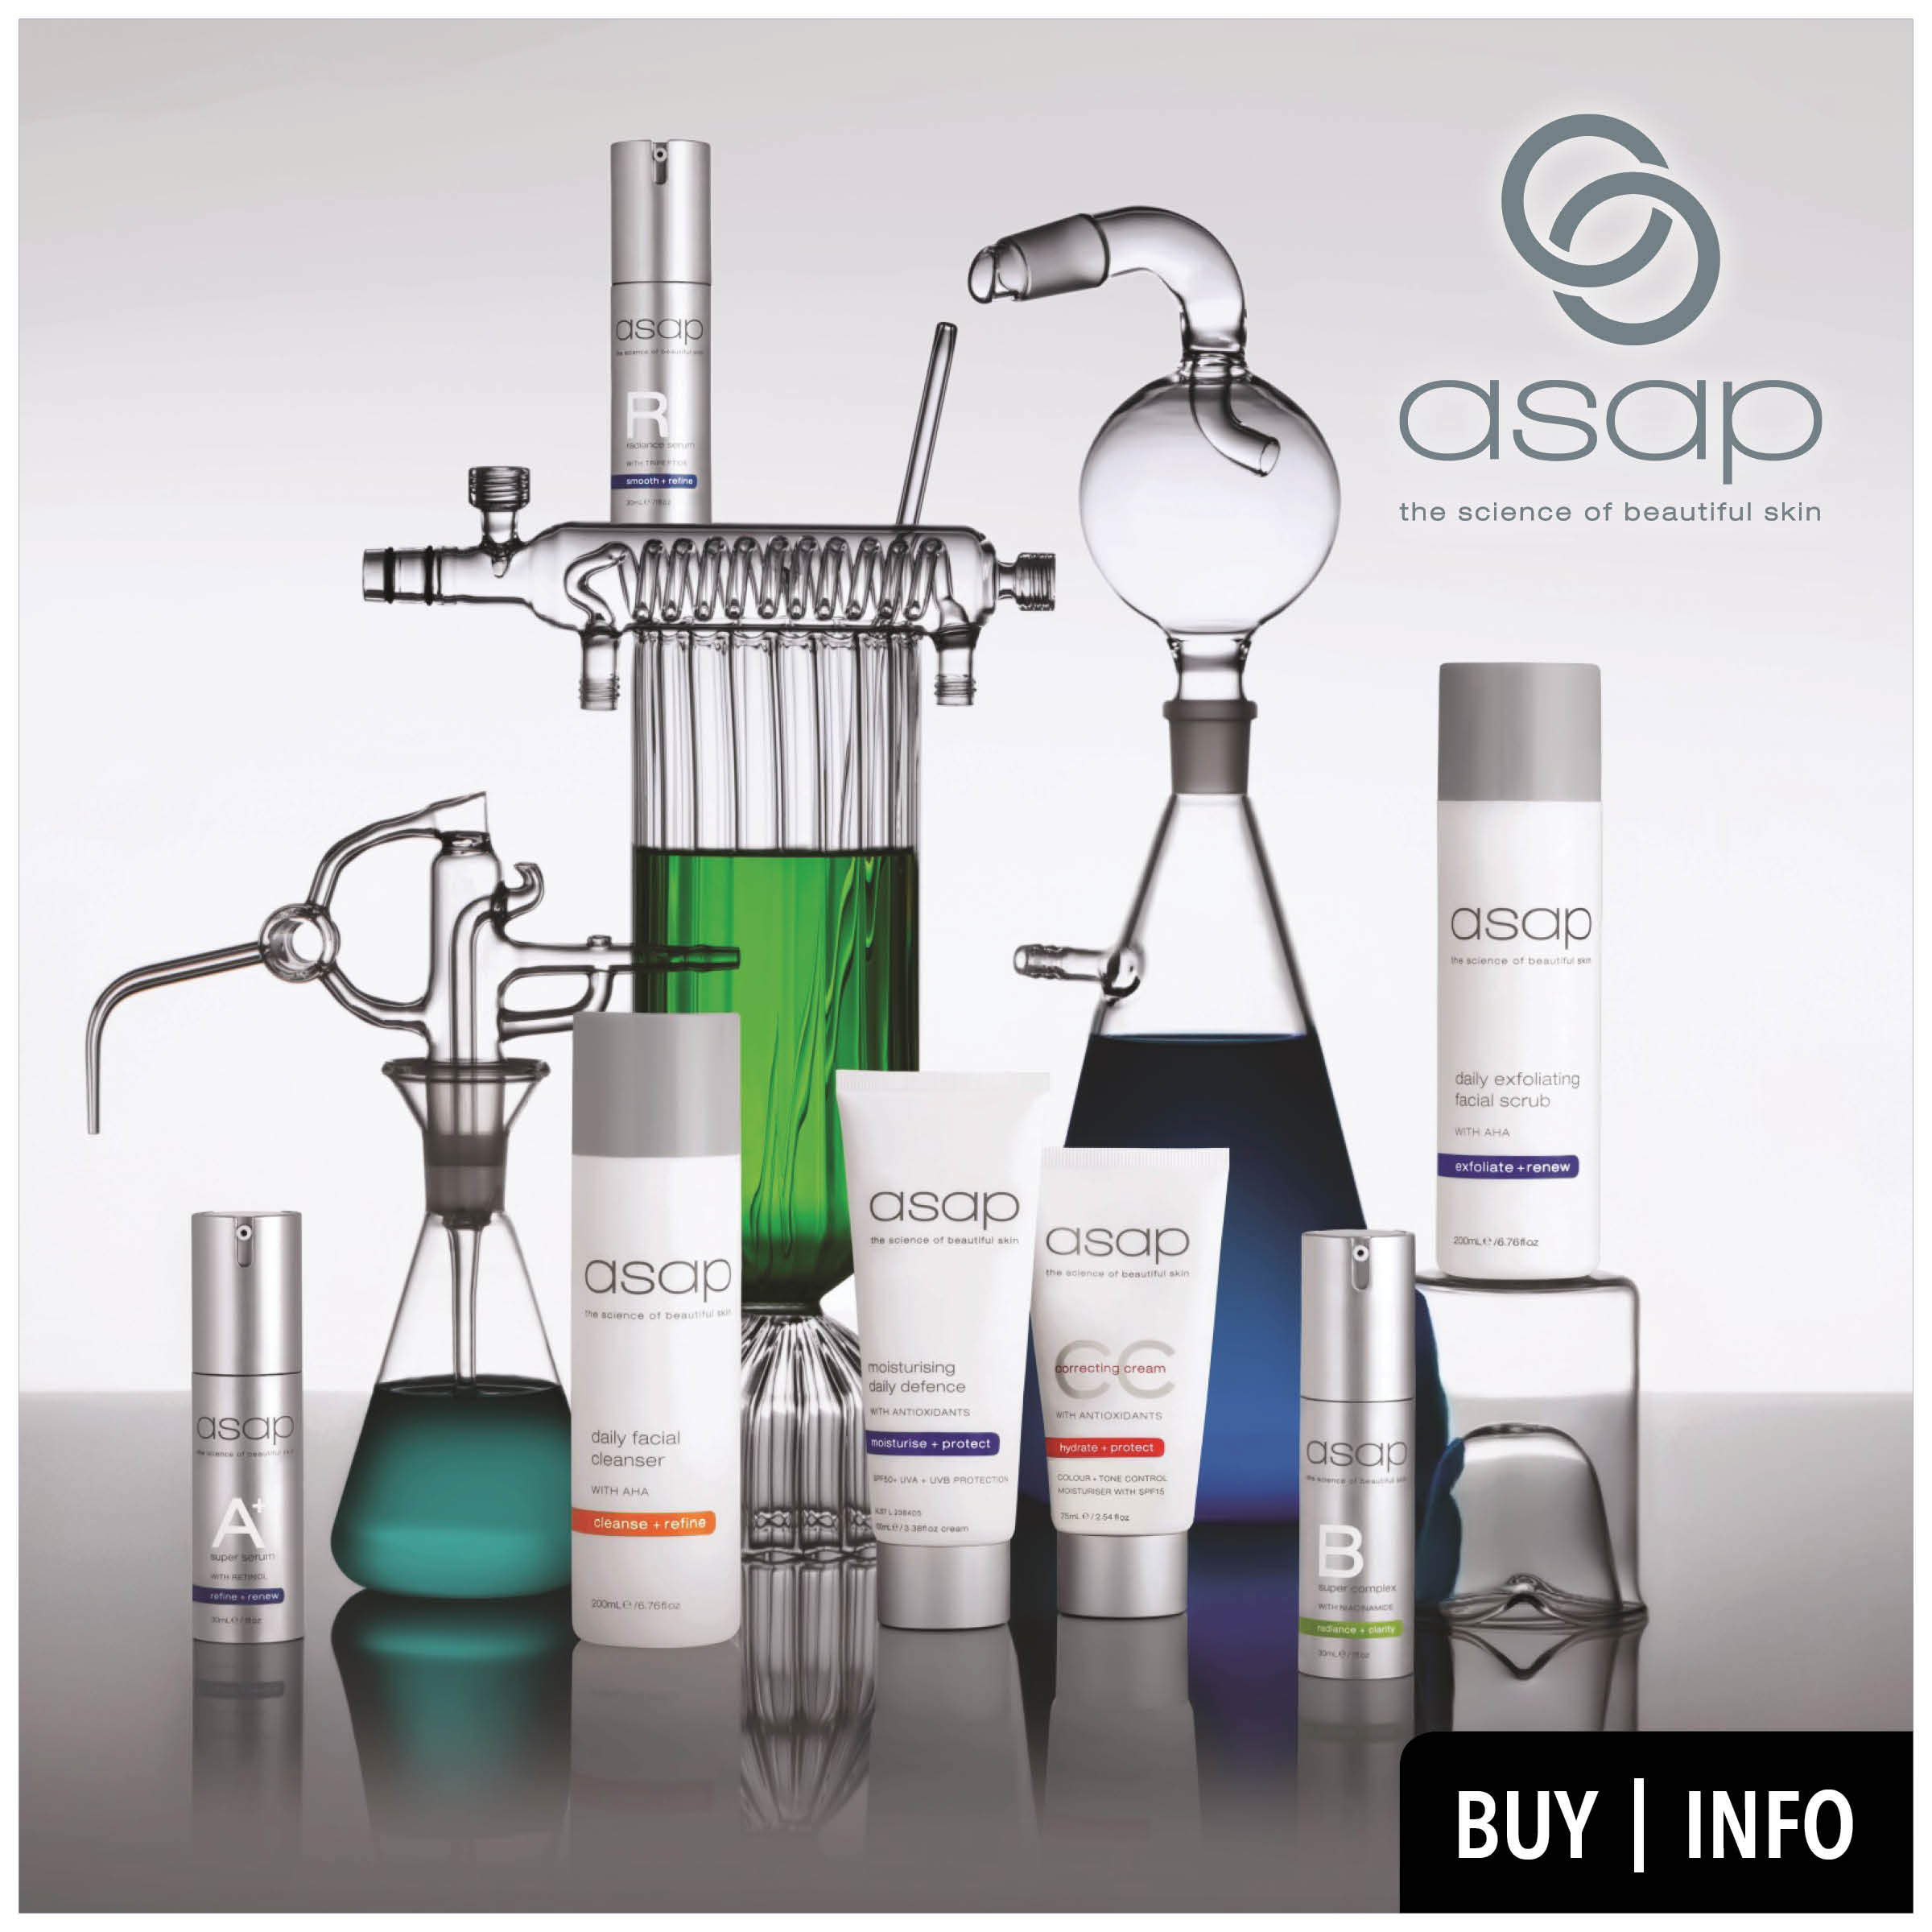 asap skincare from prodermal